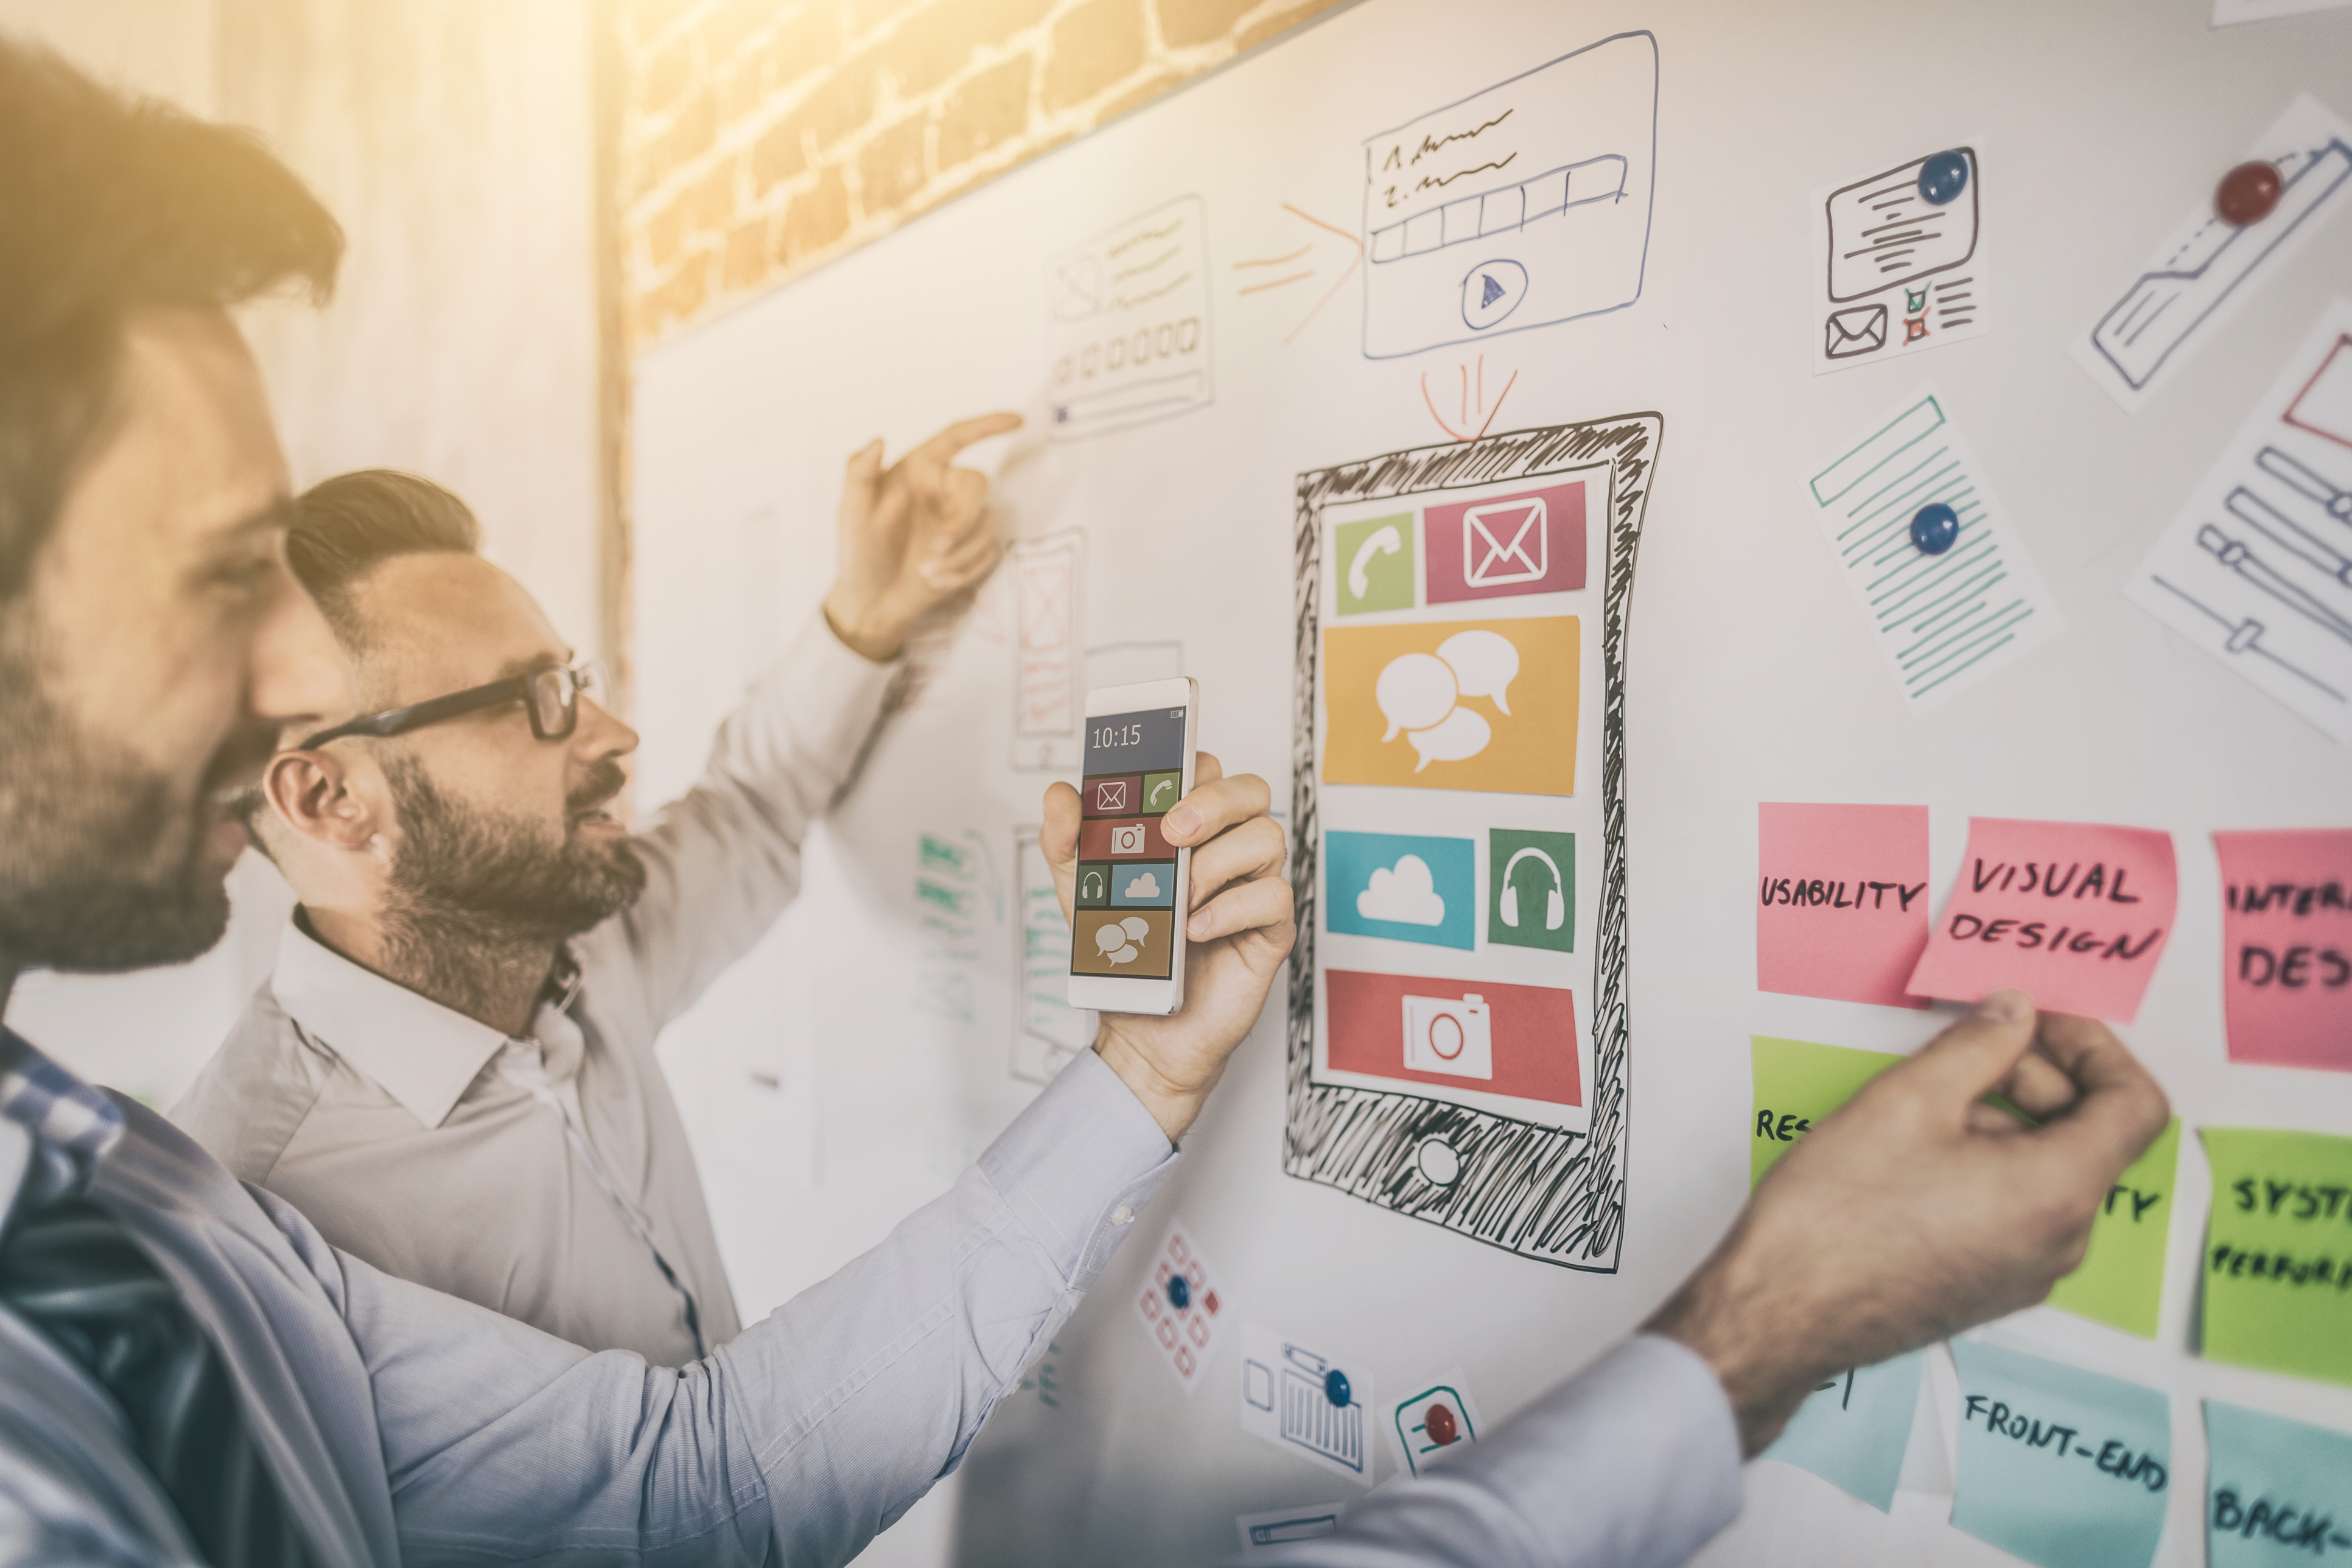 11 Examples of Innovative Mobile UX Design in 2020